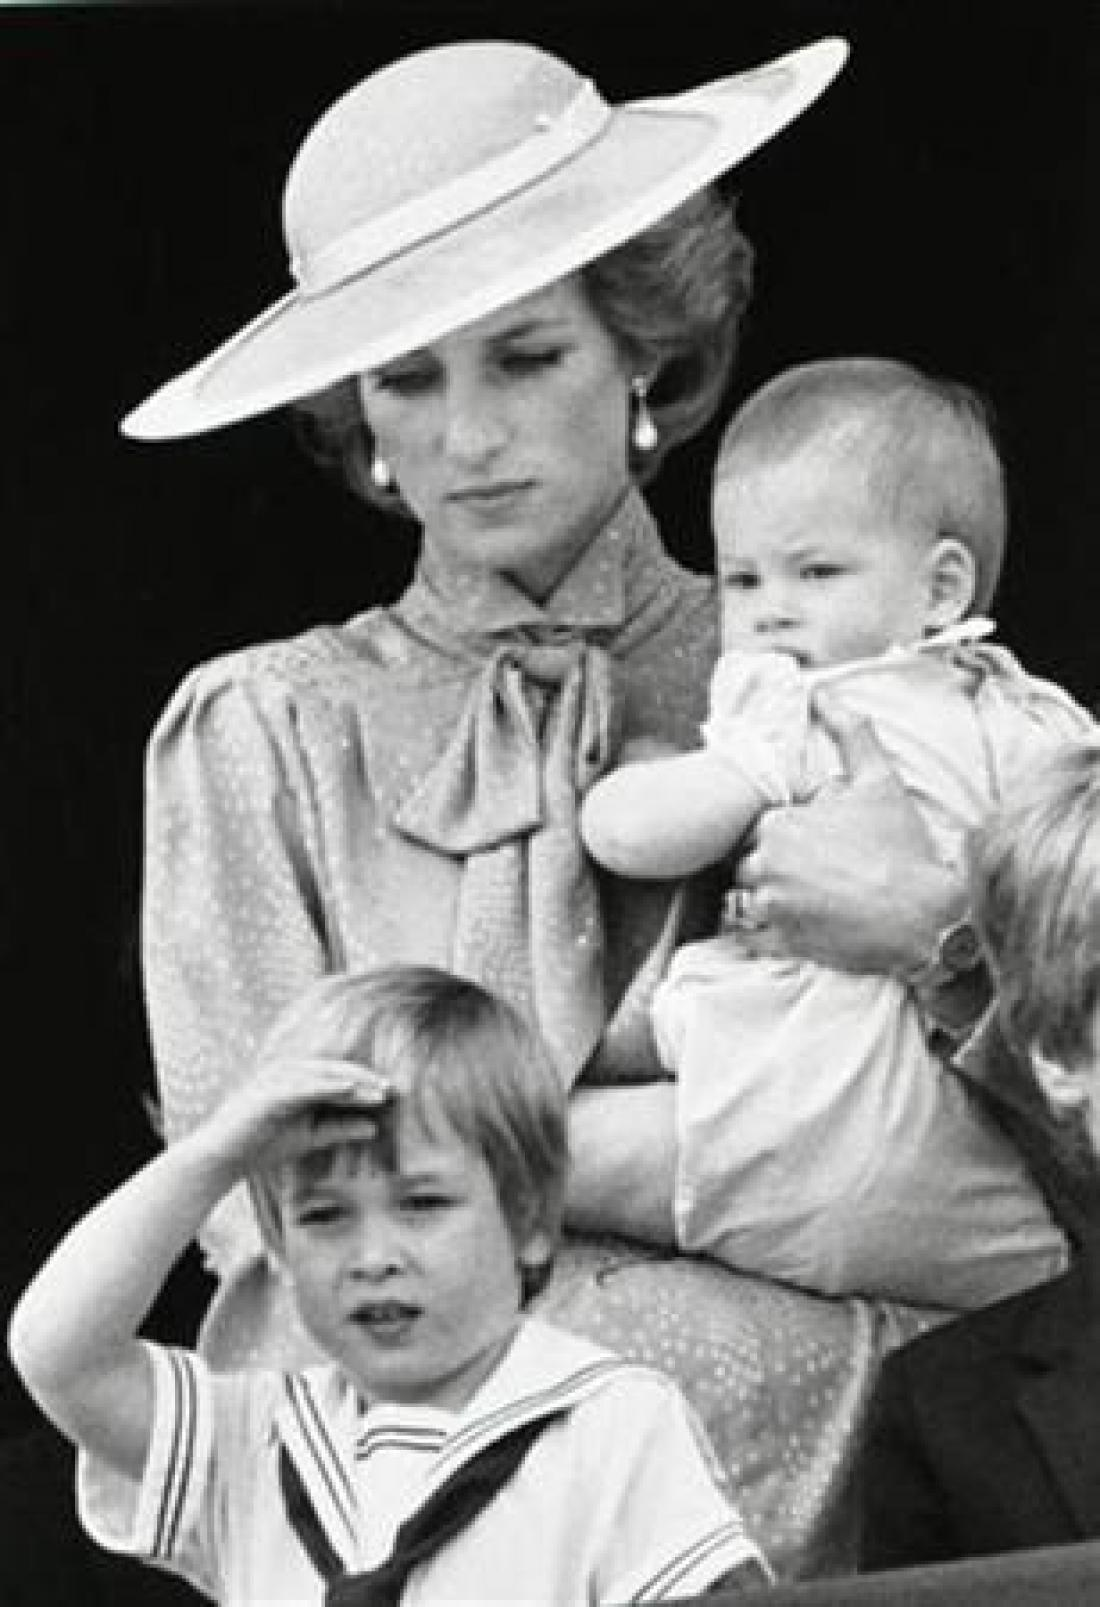 Diana z Williamom in Harryjem leta 1985. Foto: Reuters/Roy Letkey